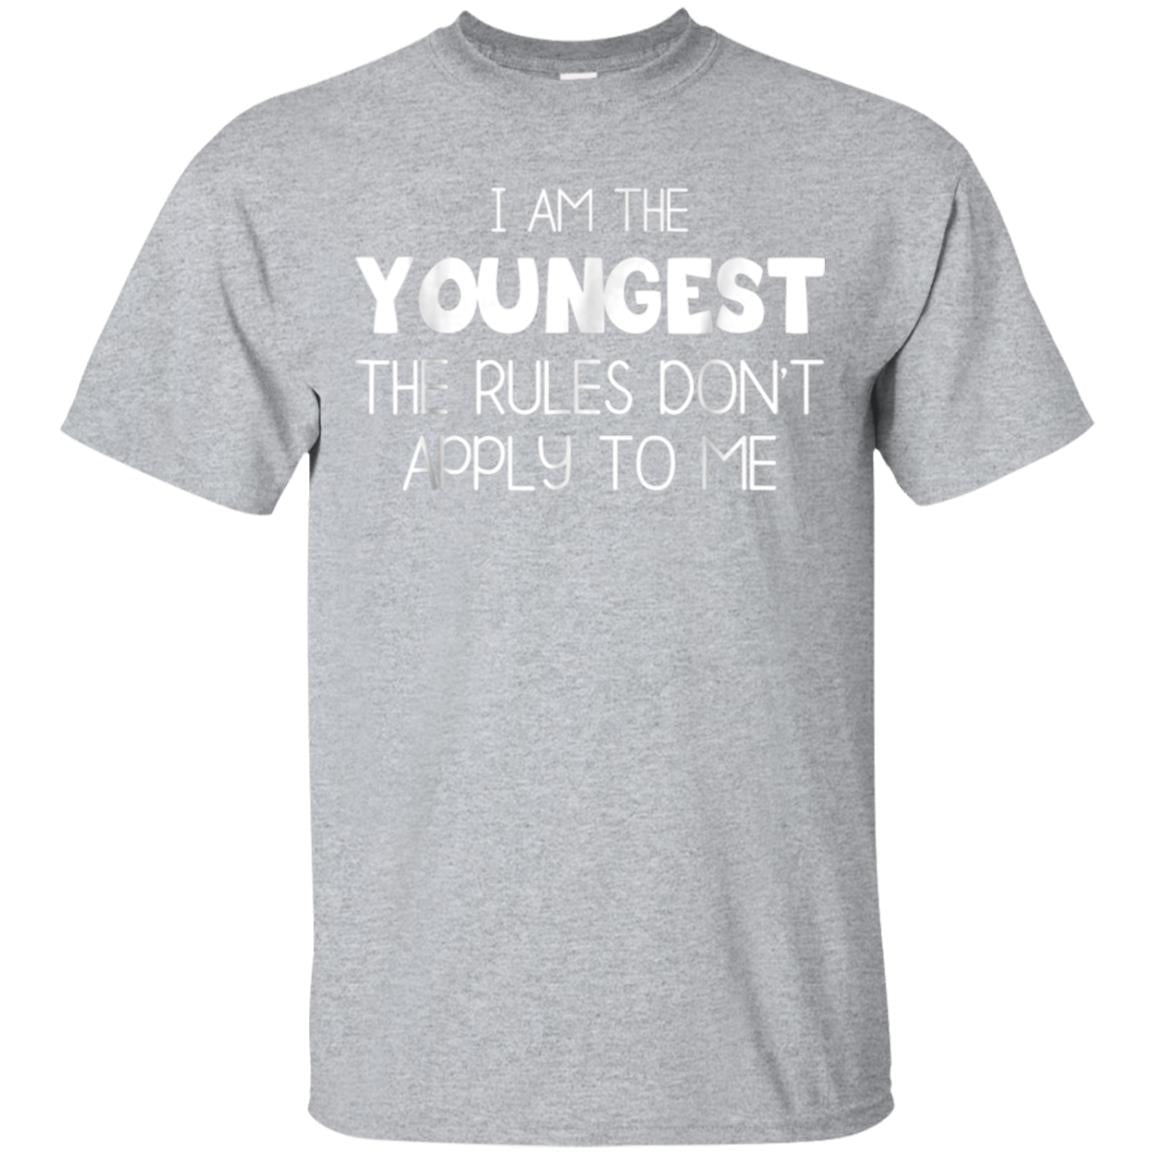 I Am The Youngest - The Rules Don't Apply To Me Shirt 99promocode